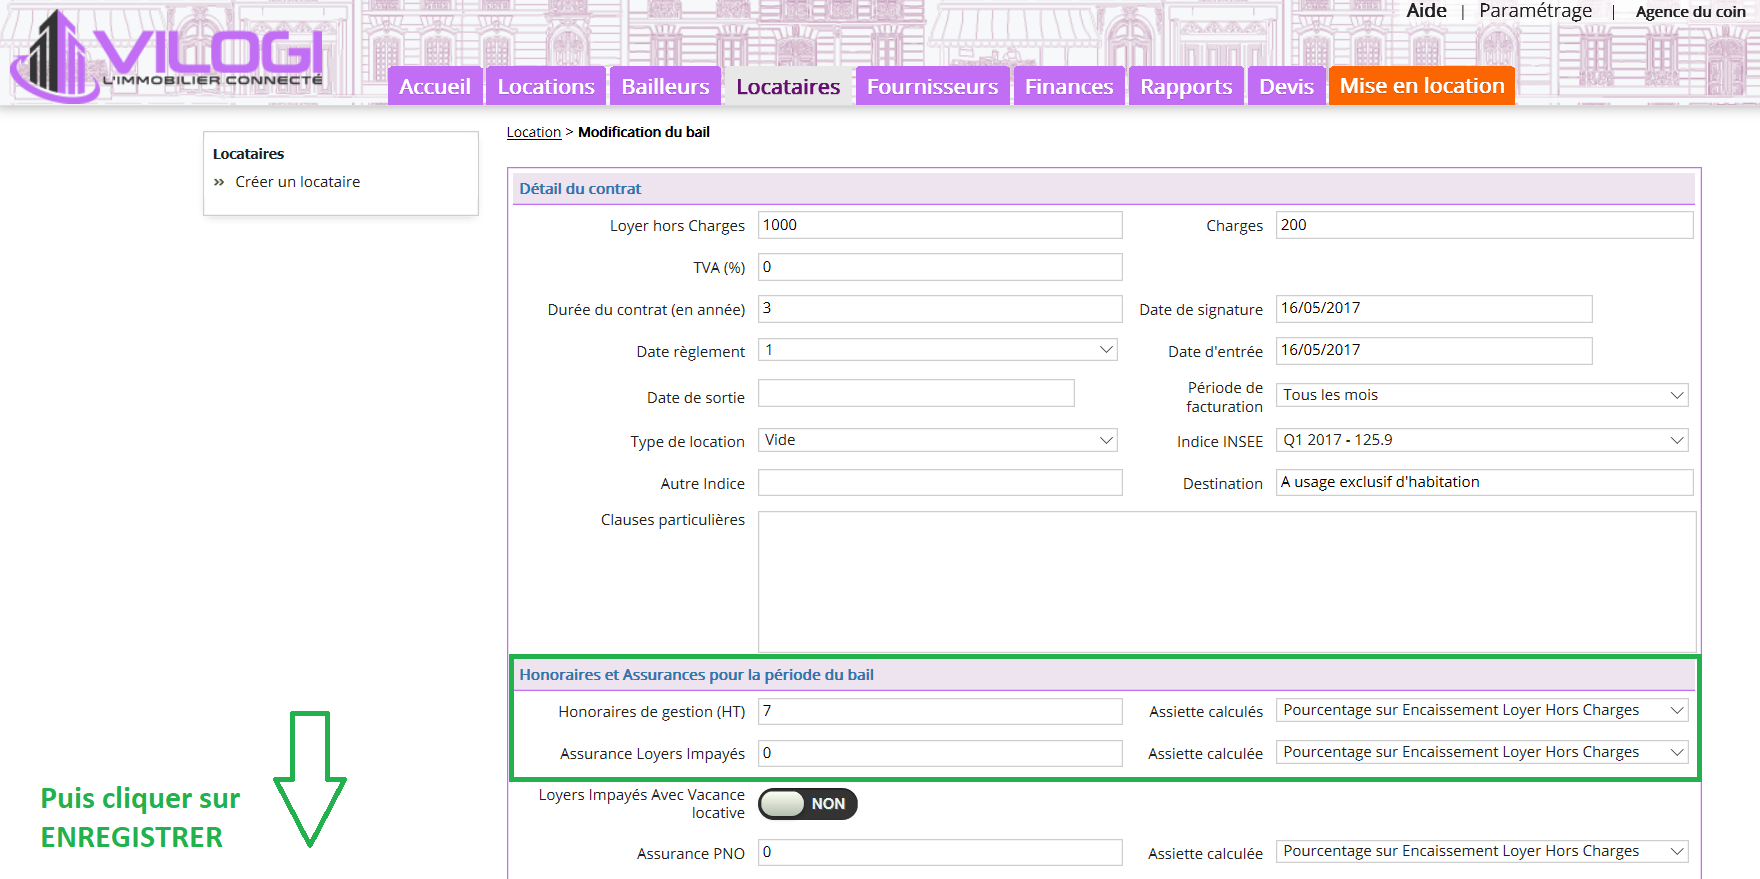 Modification des honoraires de gestion locative